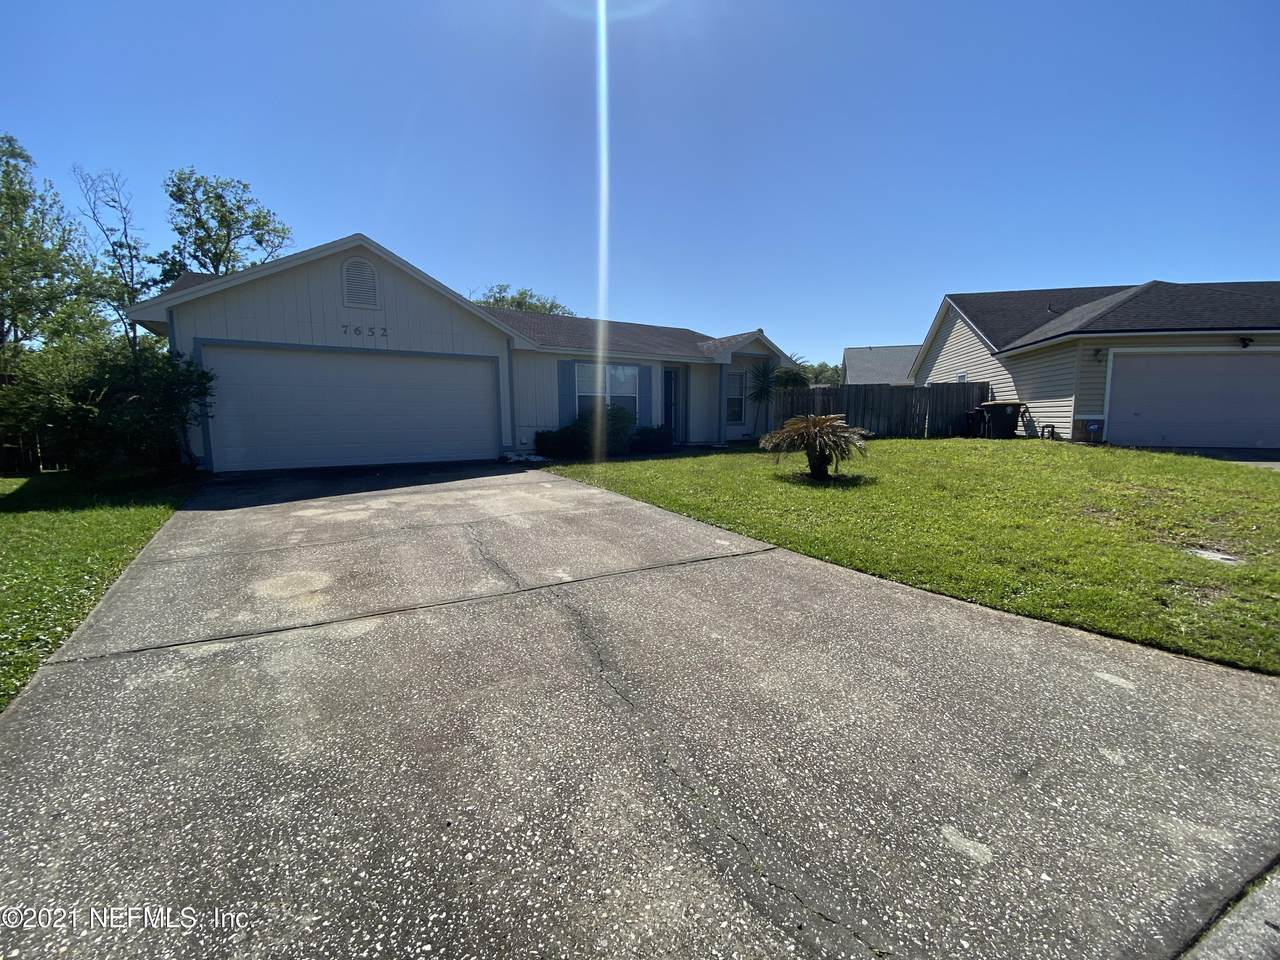 7652 Chelmsford Dr - Photo 1